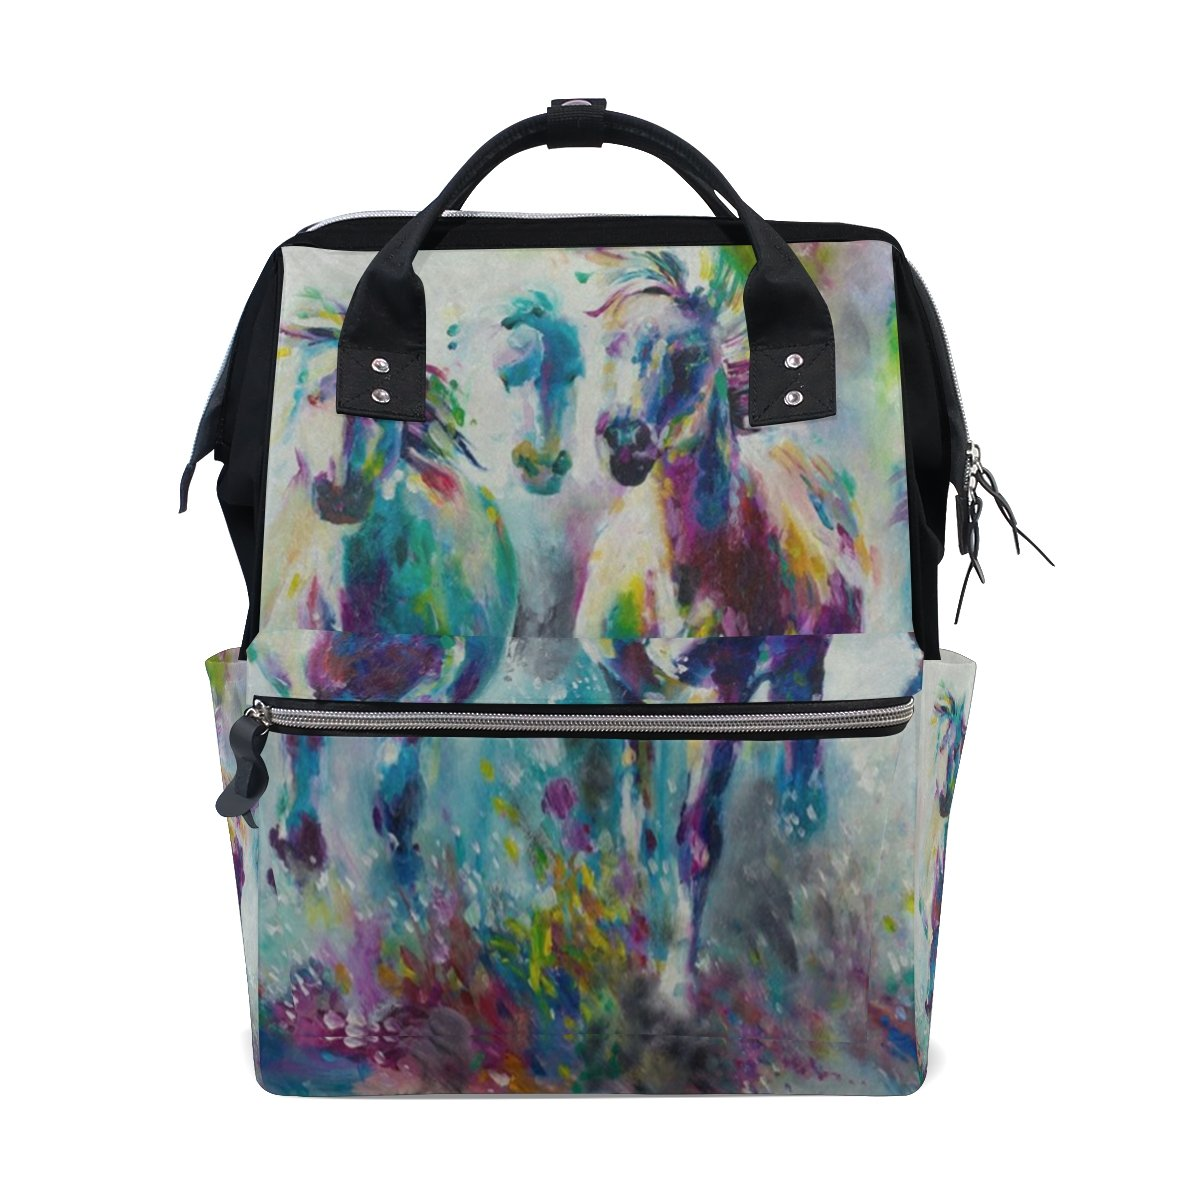 Diaper Bags Backpack Purse Mummy Backpack Nappy Bag Cool Cute Travel Backpack Laptop Backpack with Horse Painting Daypack for Women Girls Kids